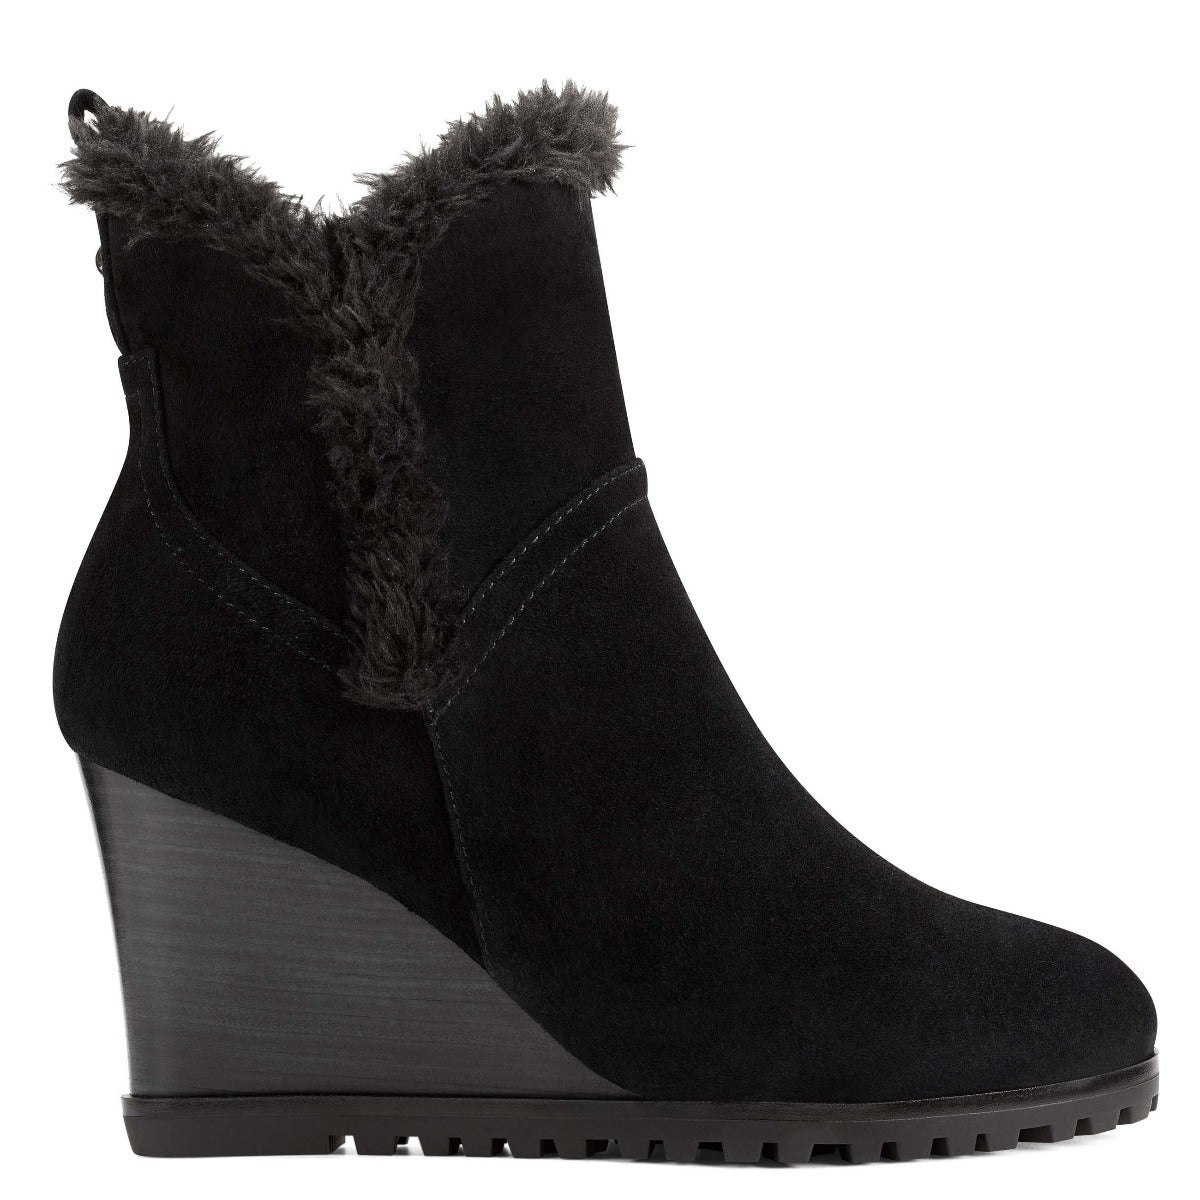 Cici wedge bootie